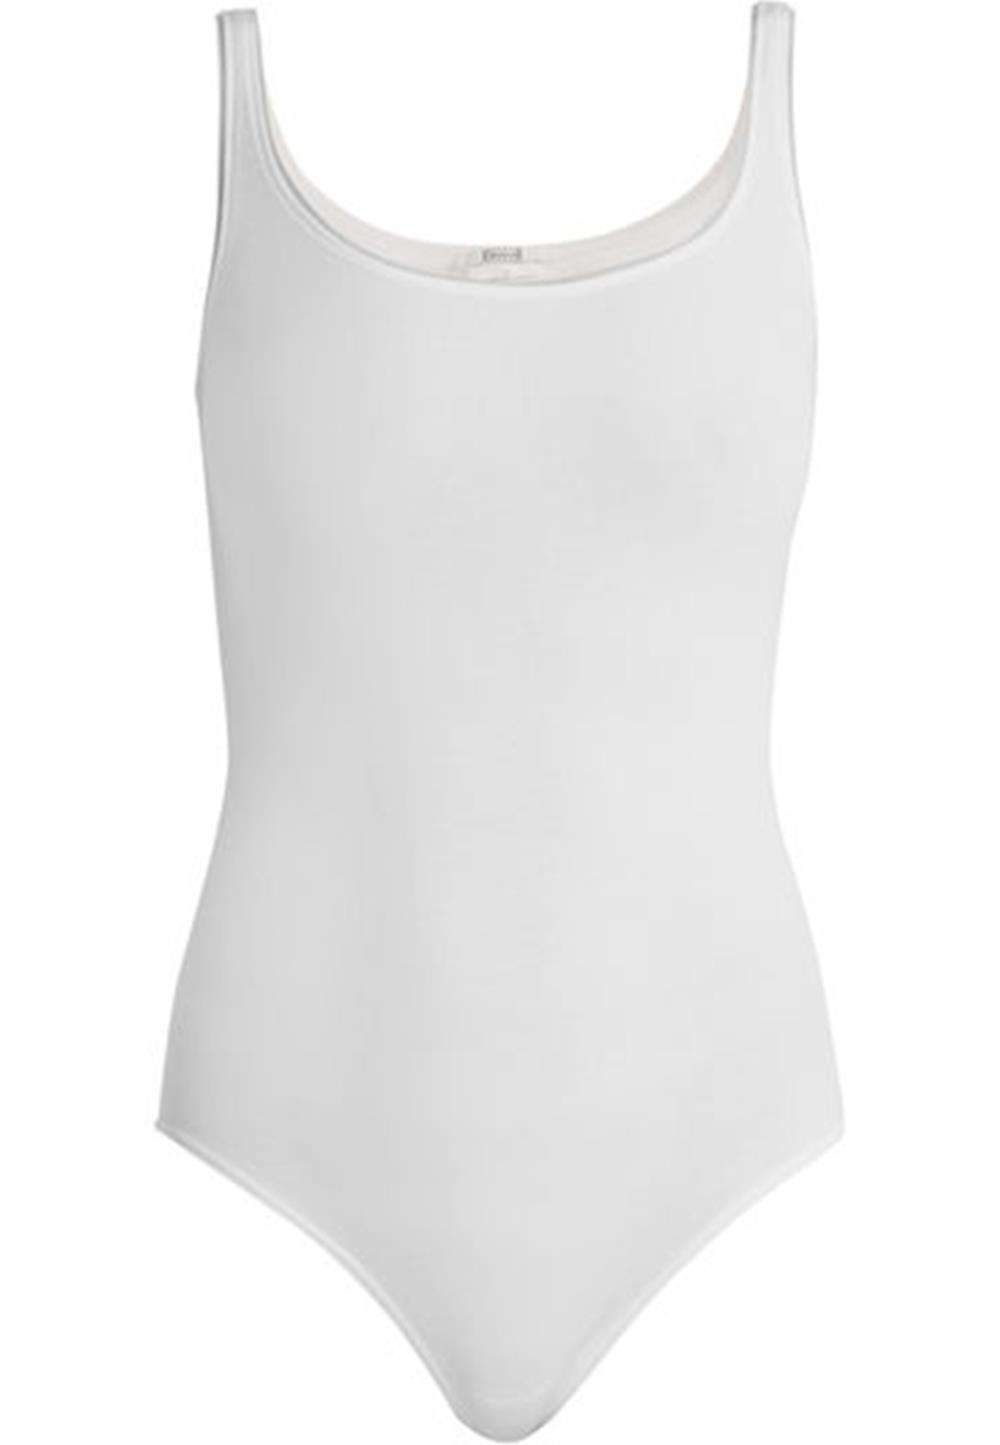 WOLFORD JAMAIKA STRETCH JERSEY THONG BODYSUIT SMALL